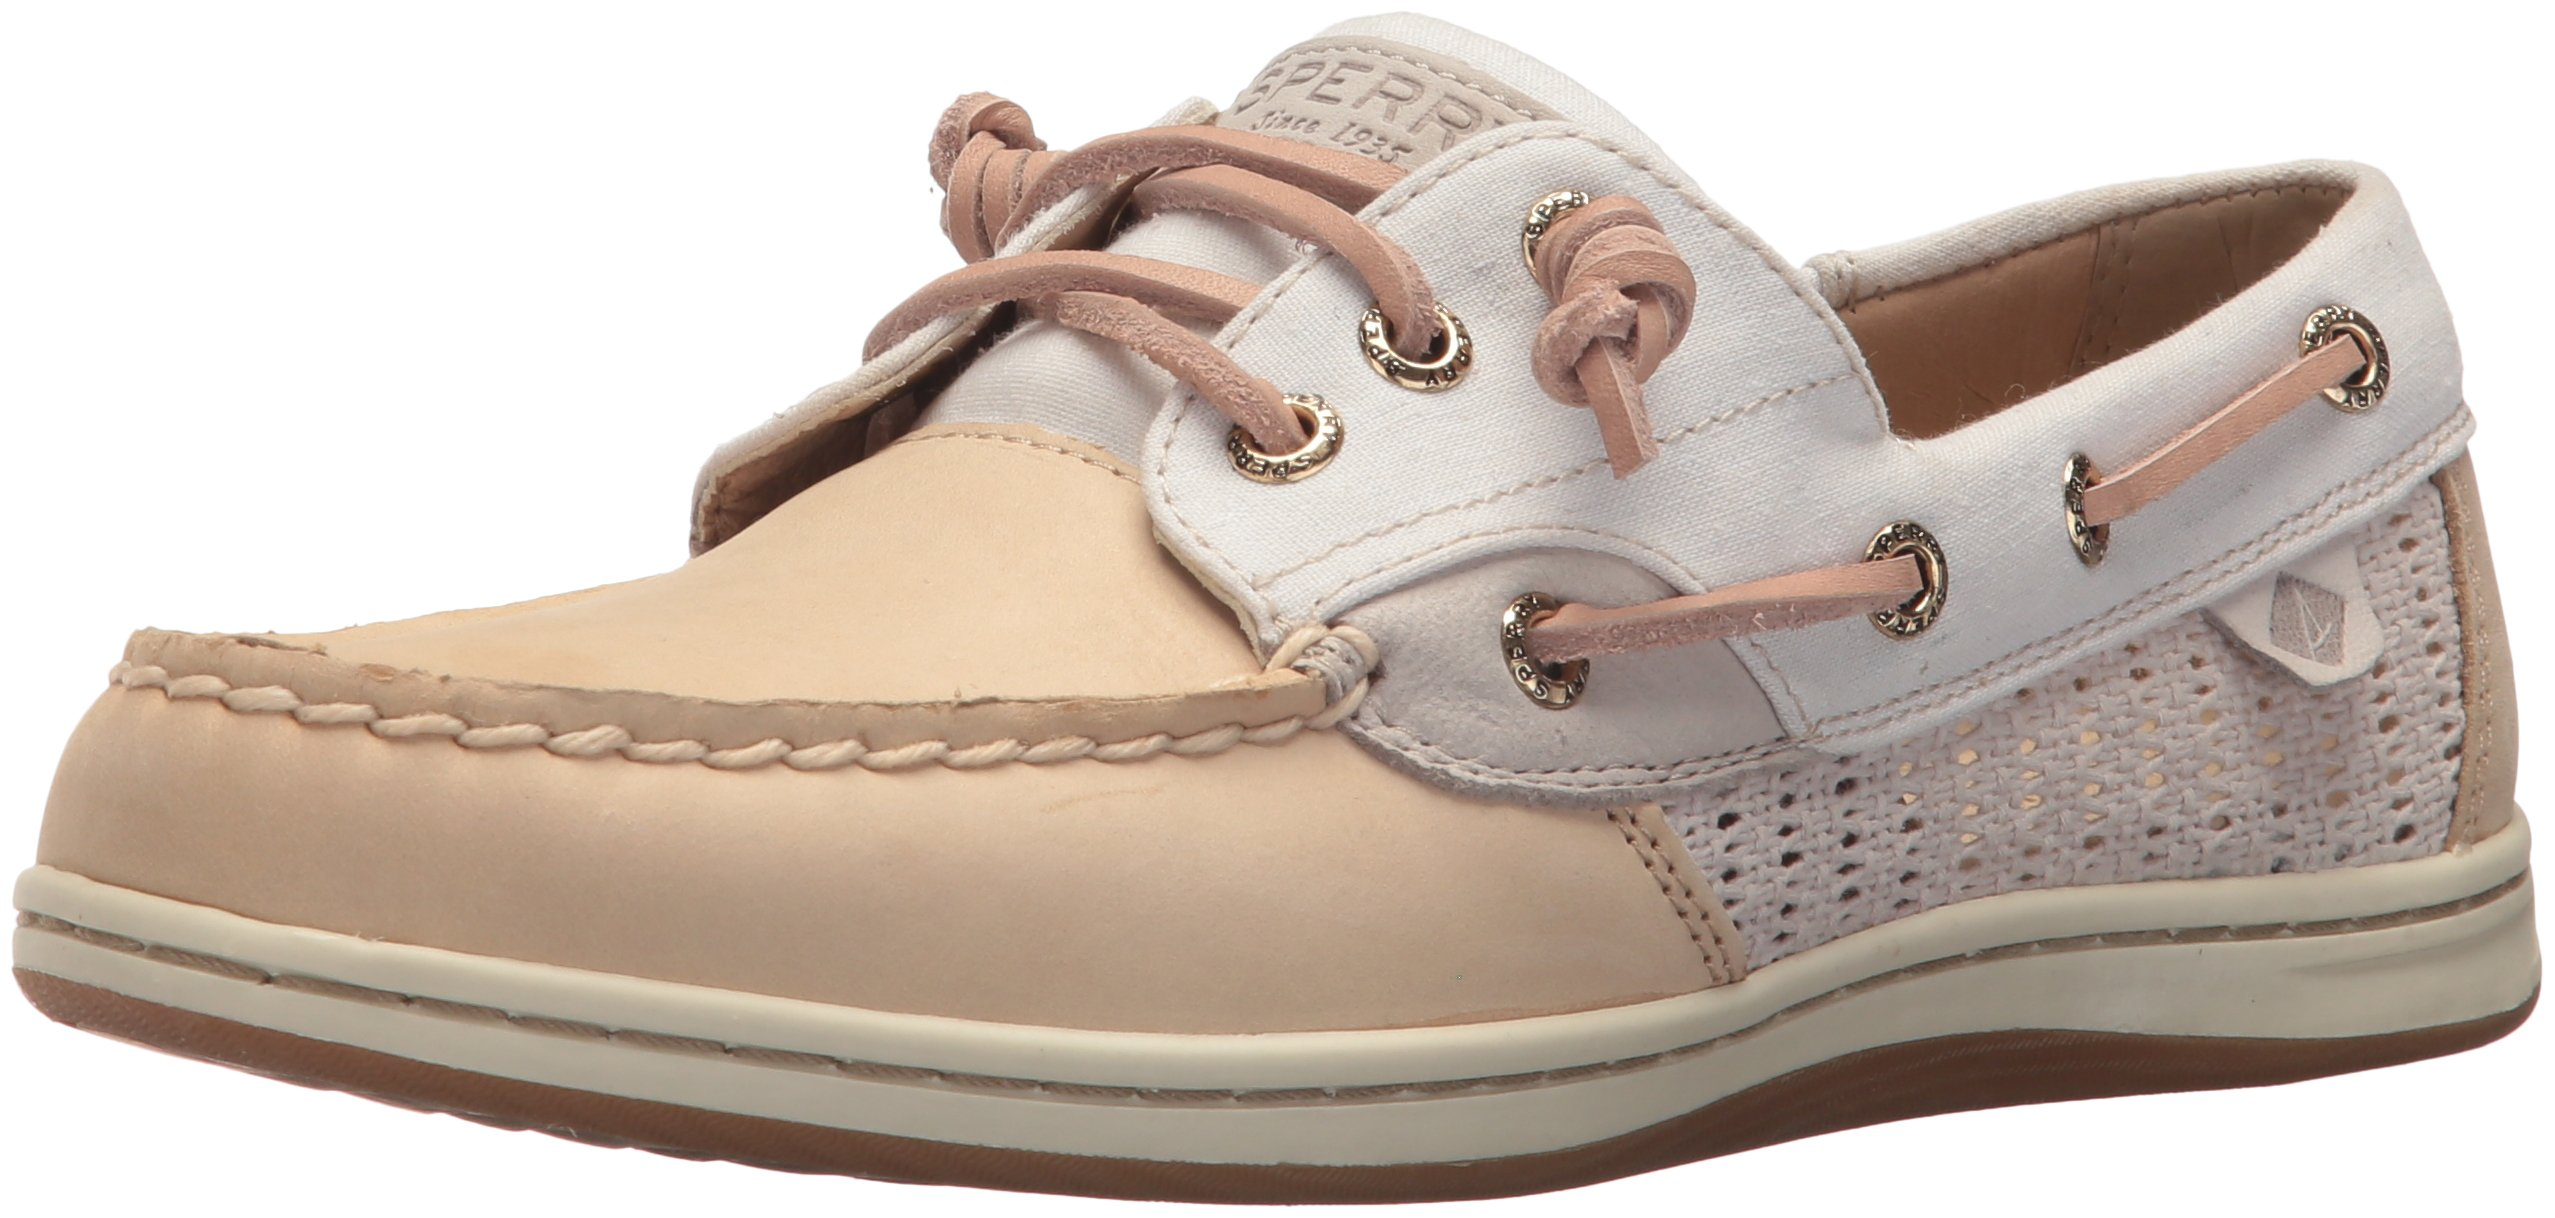 Sperry Top-Sider Women's Songfish Chambray Boat Shoe, Linen, 9 Wide US